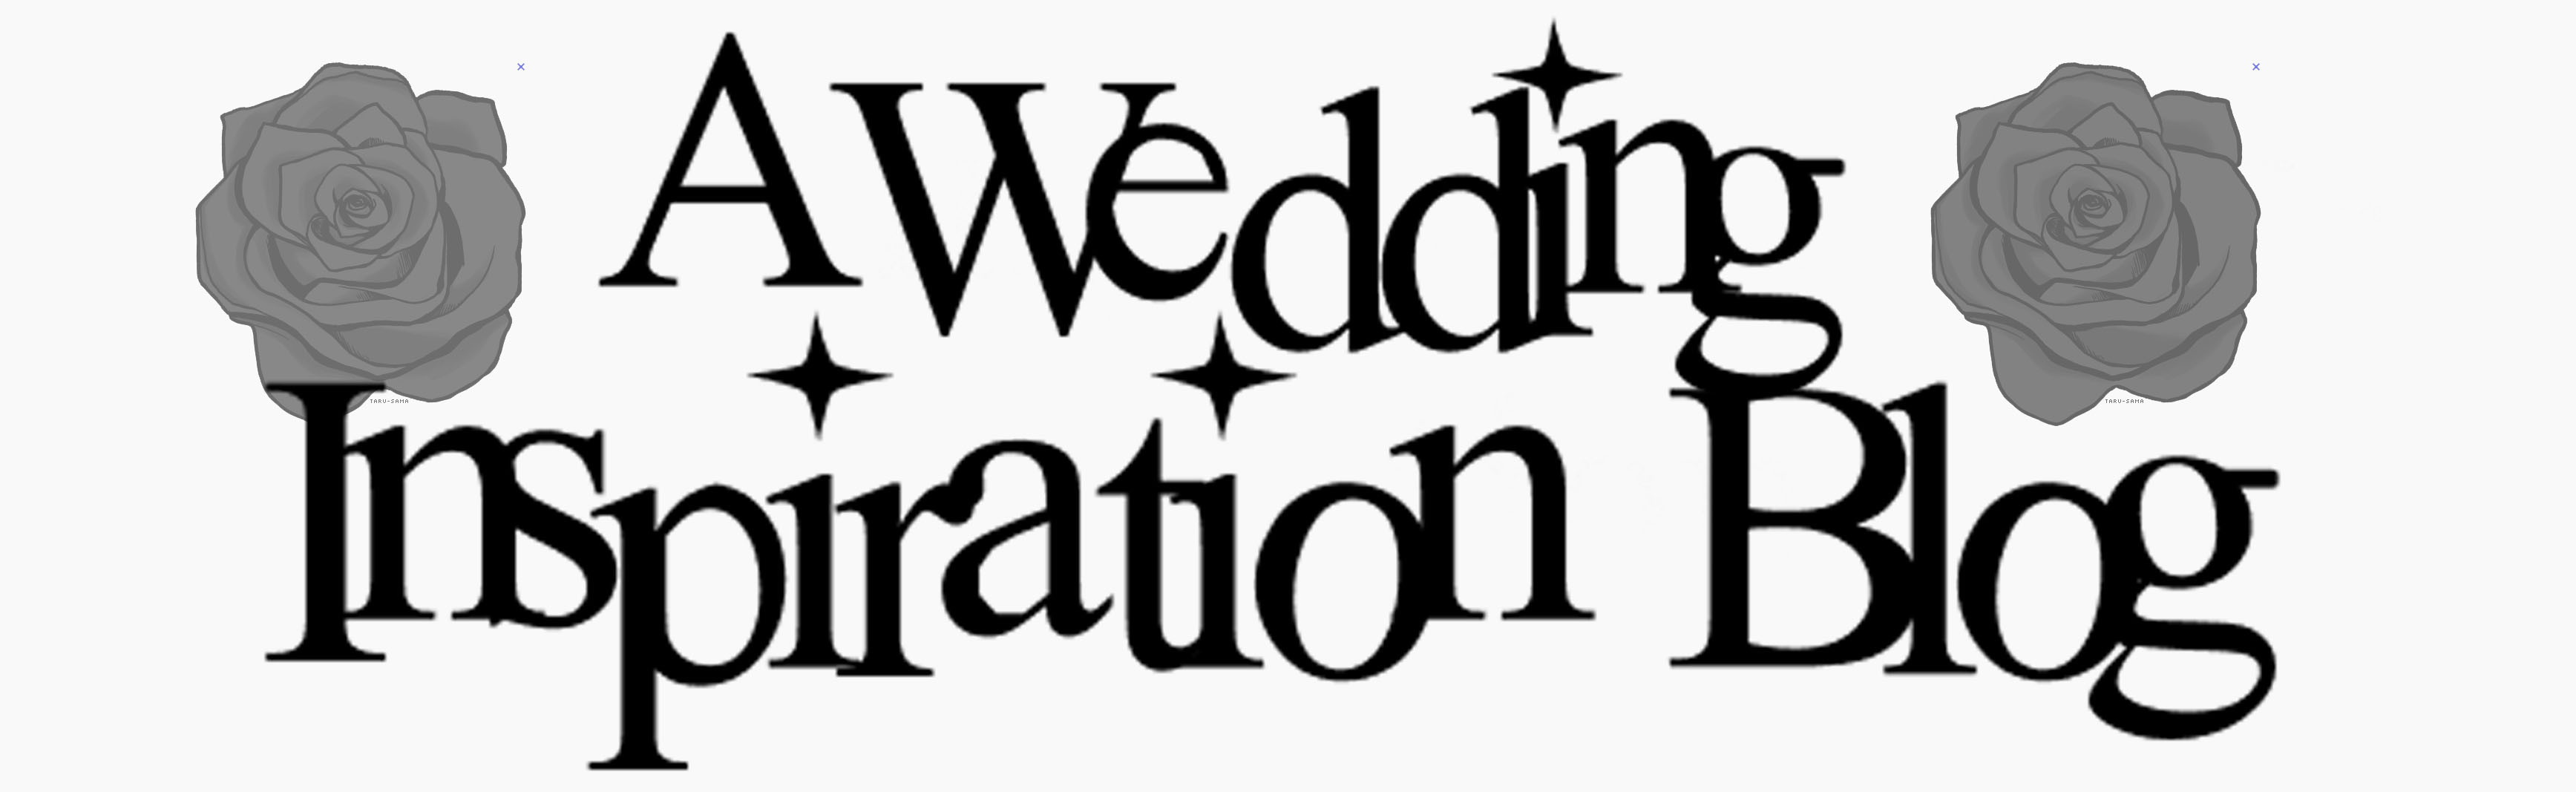 -All things wedding-My inspiration blog